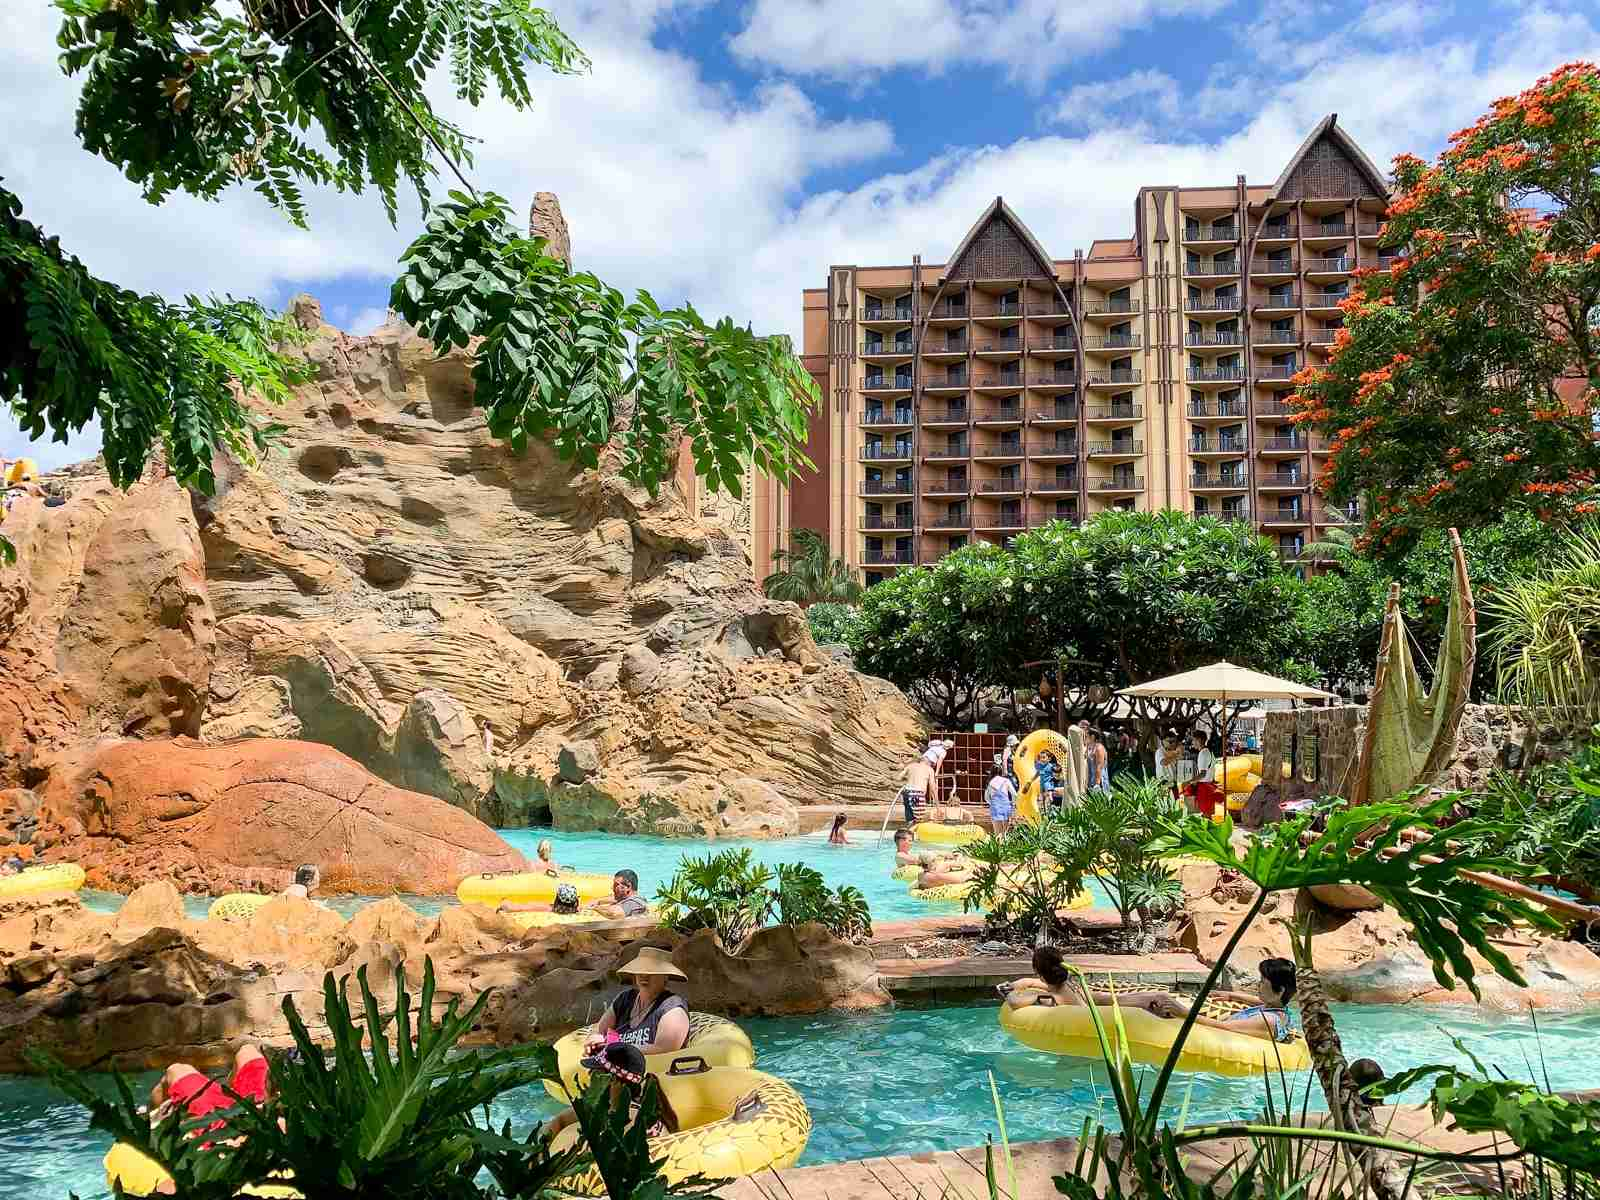 Disney Aulani (Photo by Summer Hull / The Points Guy)